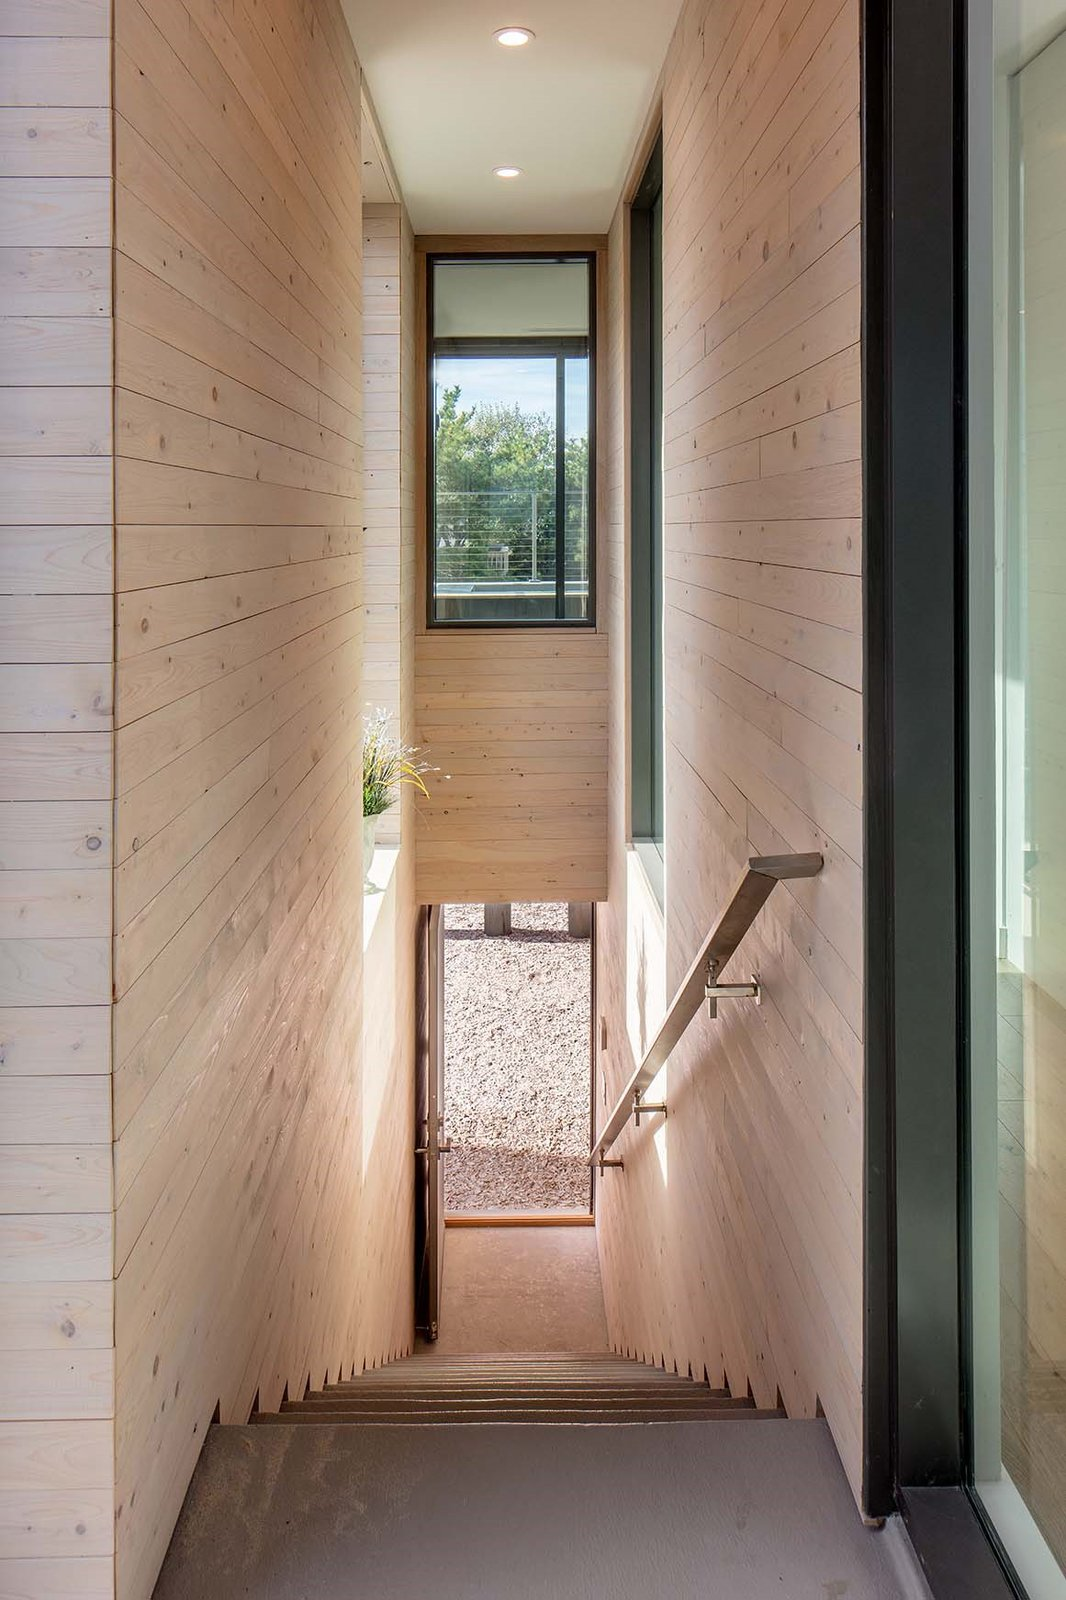 Beach Haven Residence, Entrance/Exterior Stairwell.   Beach Haven Residence by Specht Architects